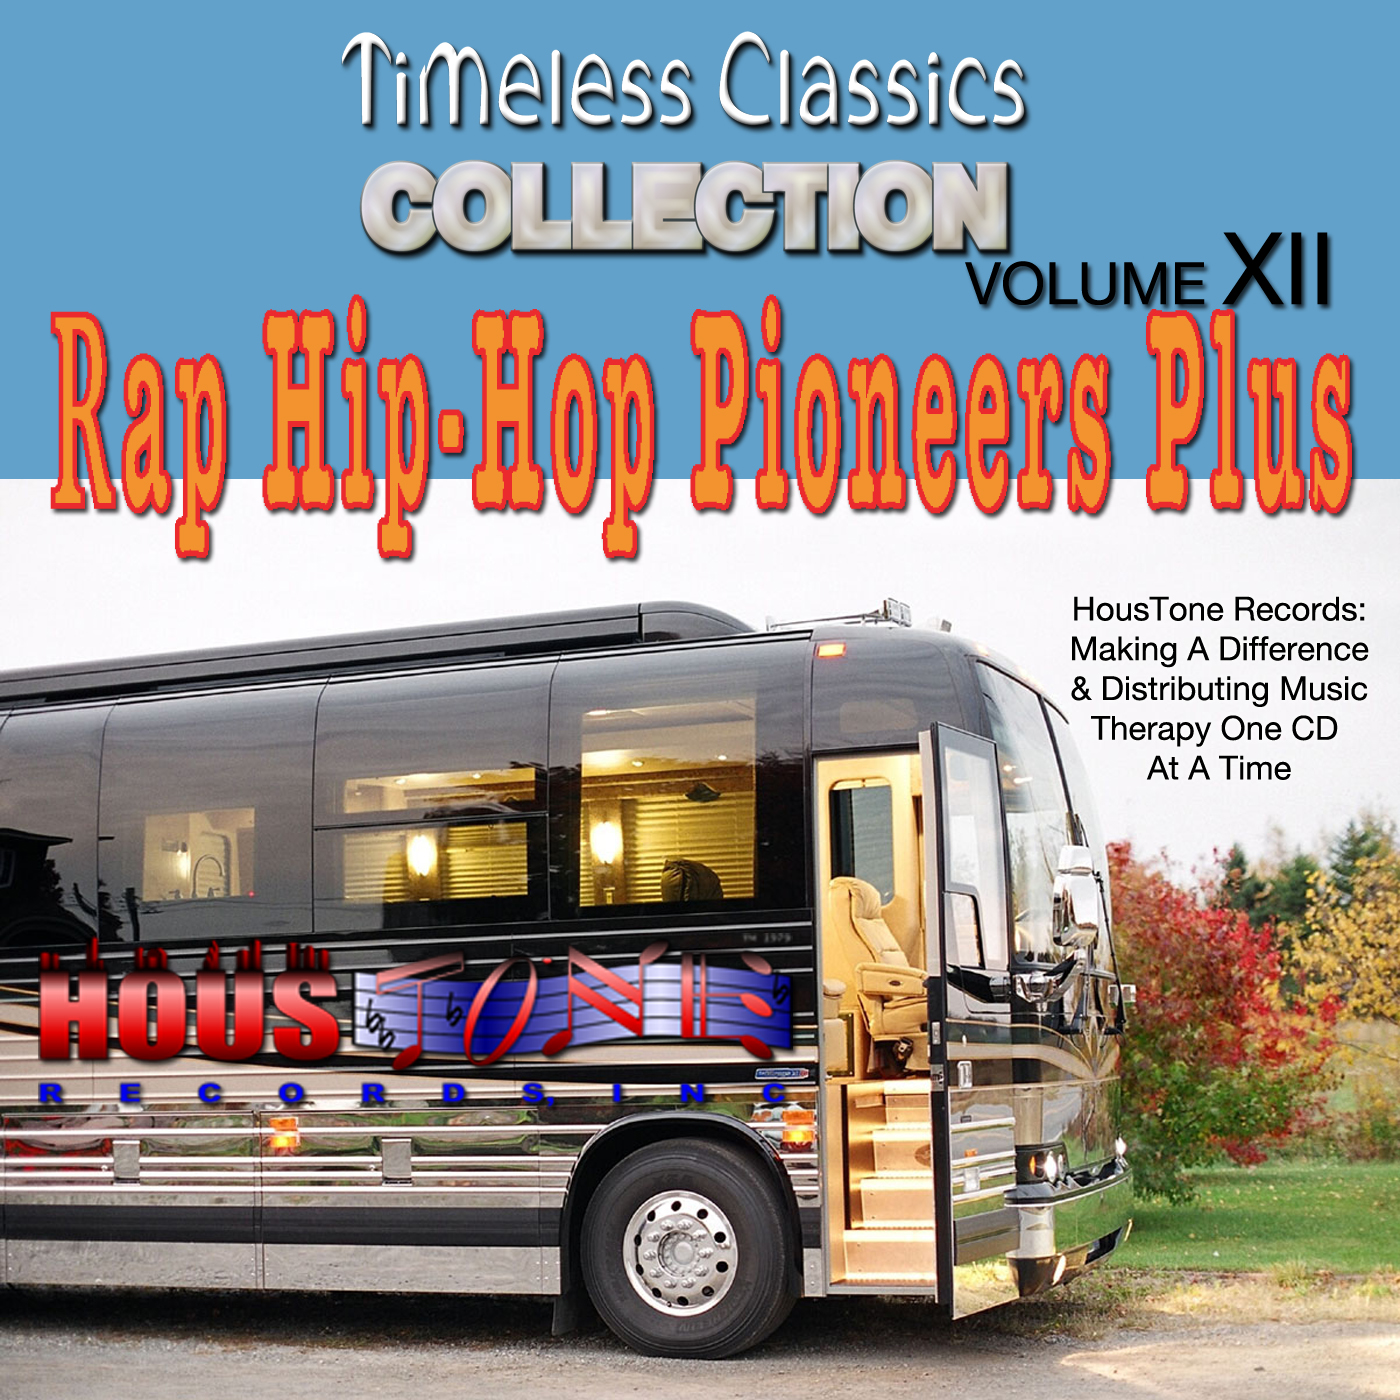 TIMELESS CLASSICS VOLUME XII RAP HIP HOP PIONEERS PLUS